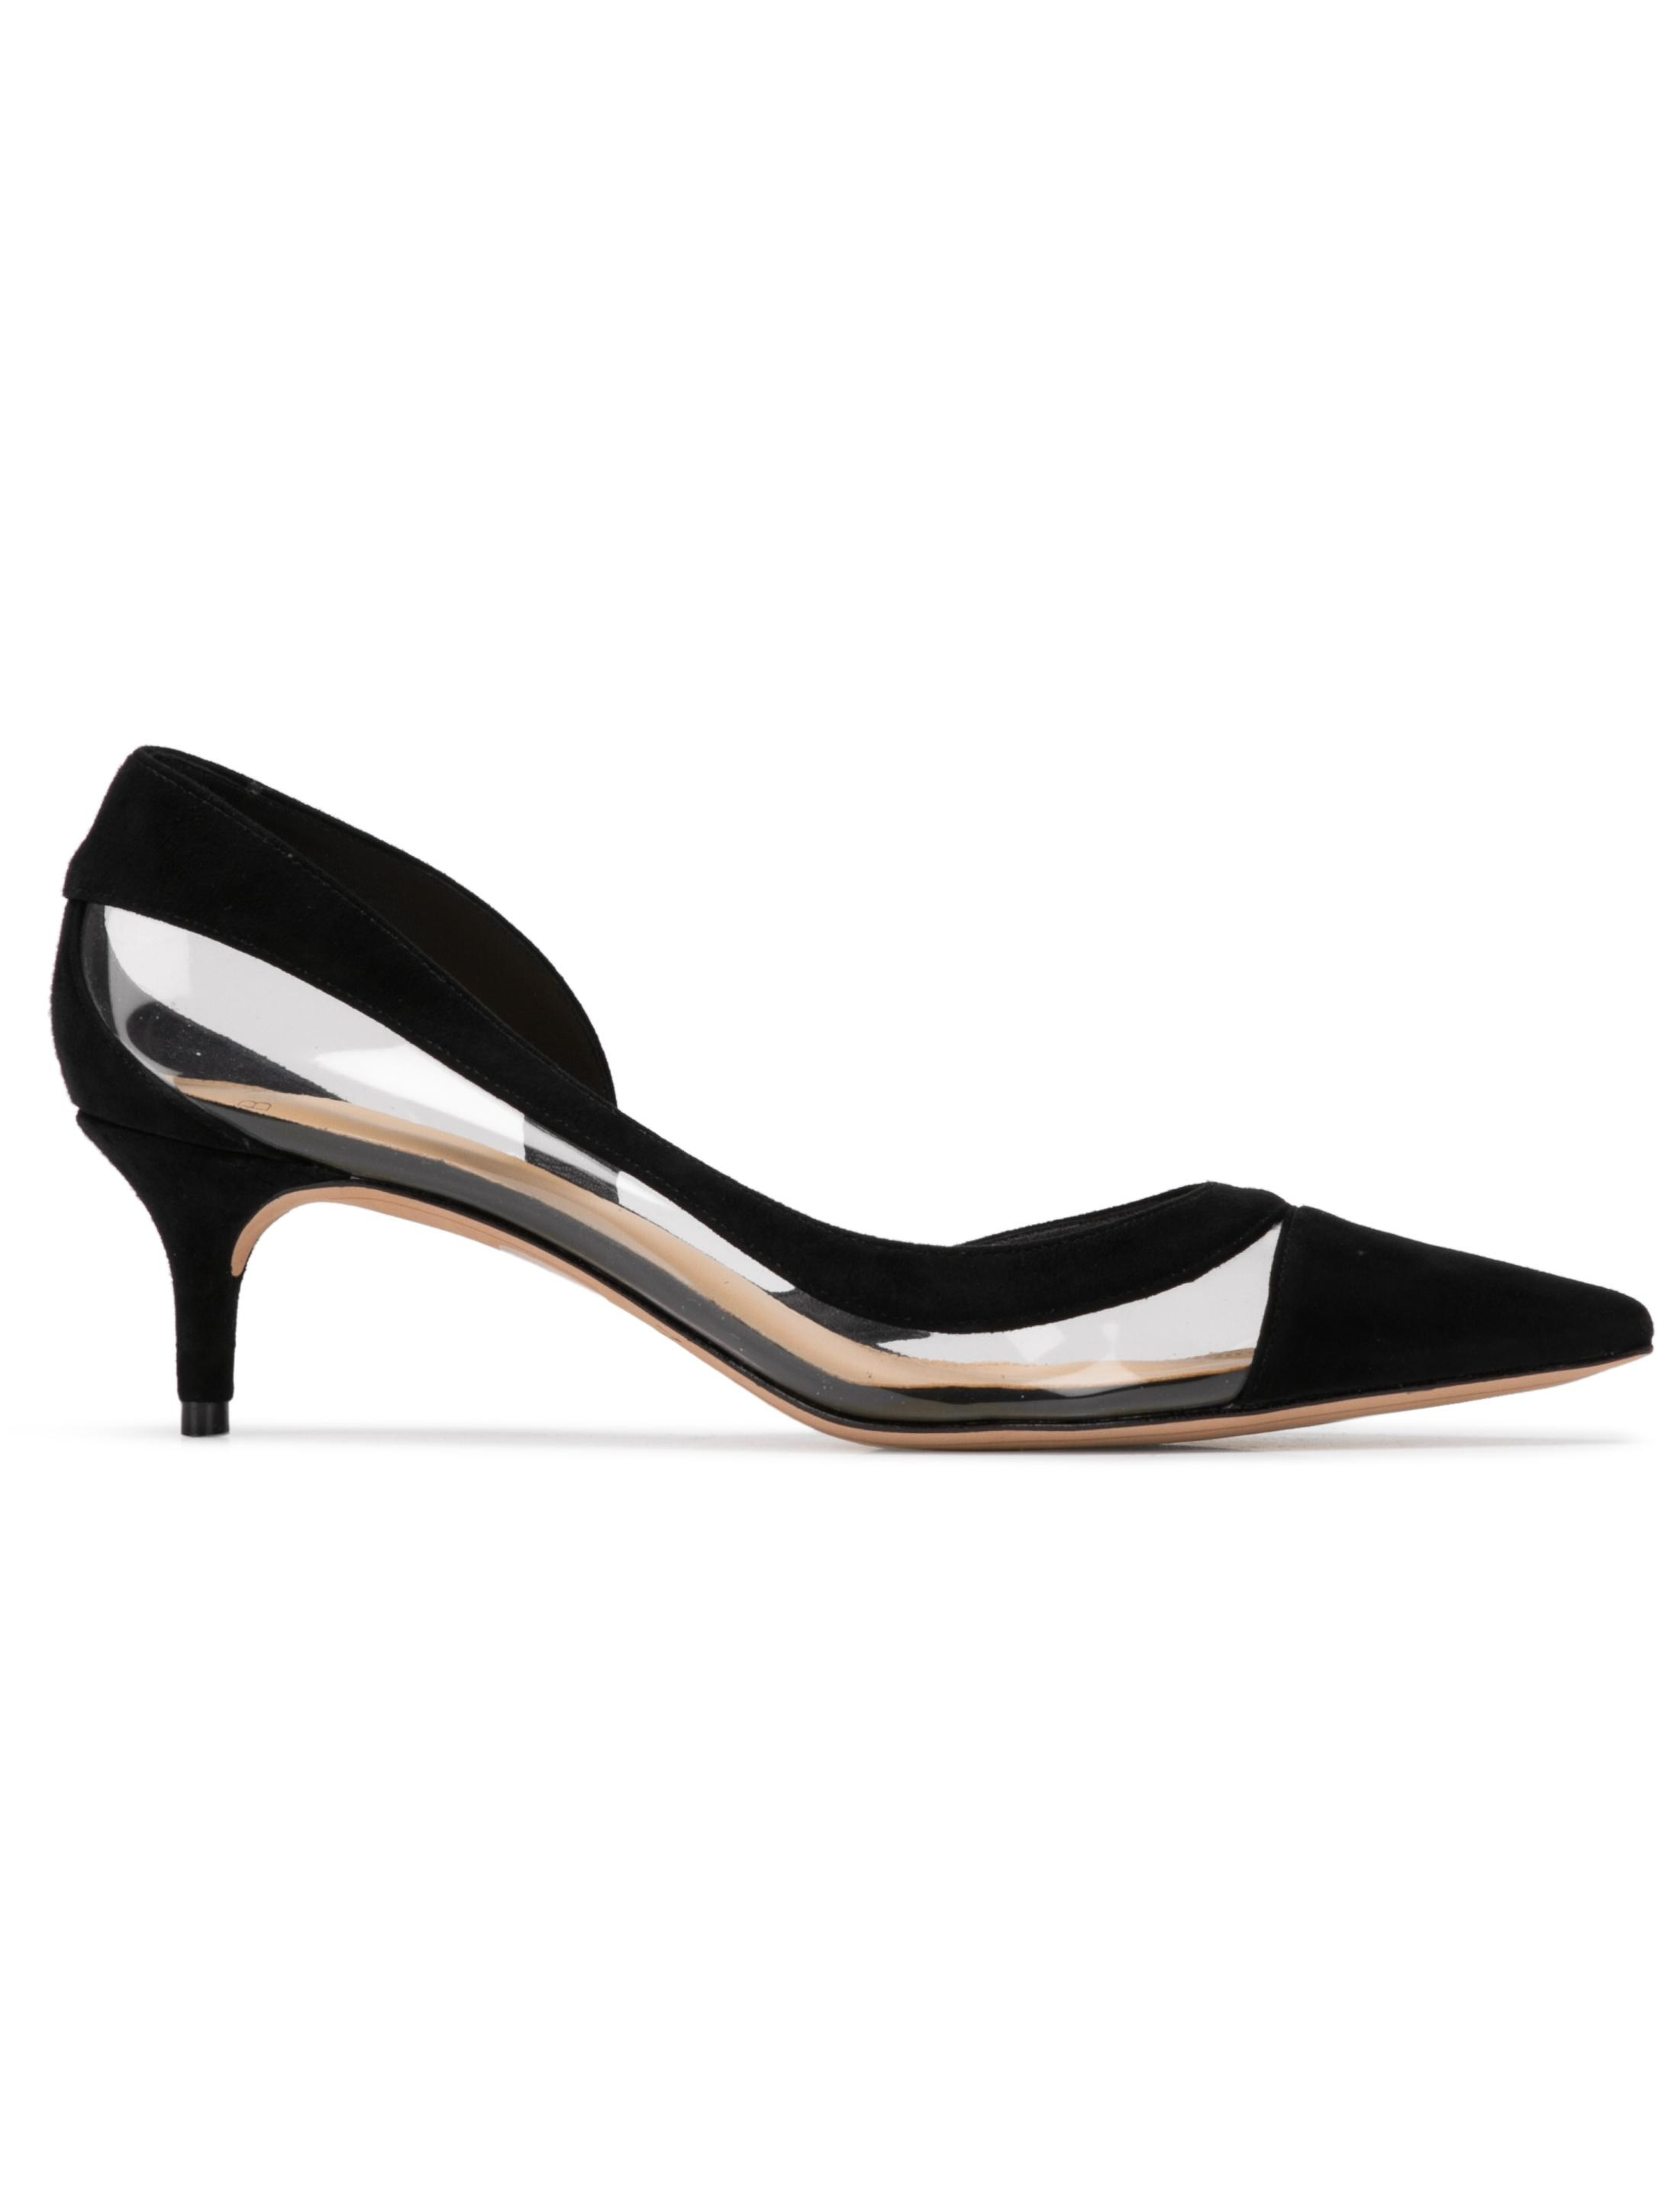 Wavee Pump 50mm Kitten Heel With Vinyl Sued